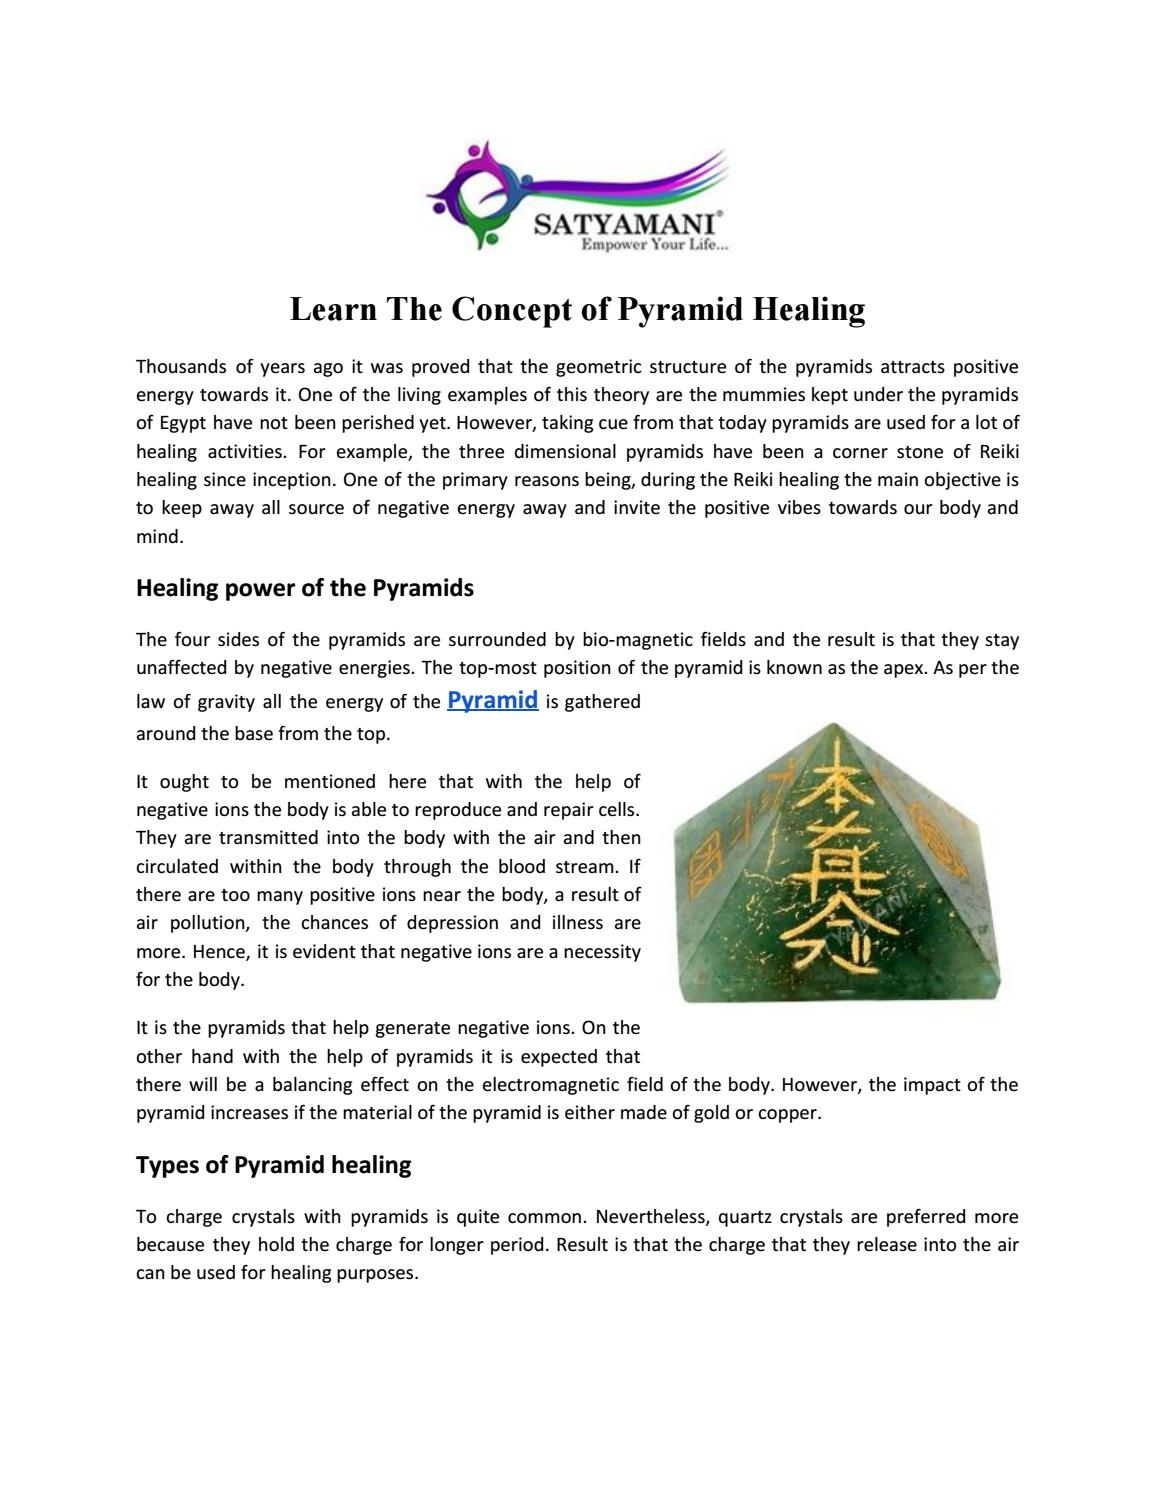 Learn the concept of pyramid healing - satyamni org by